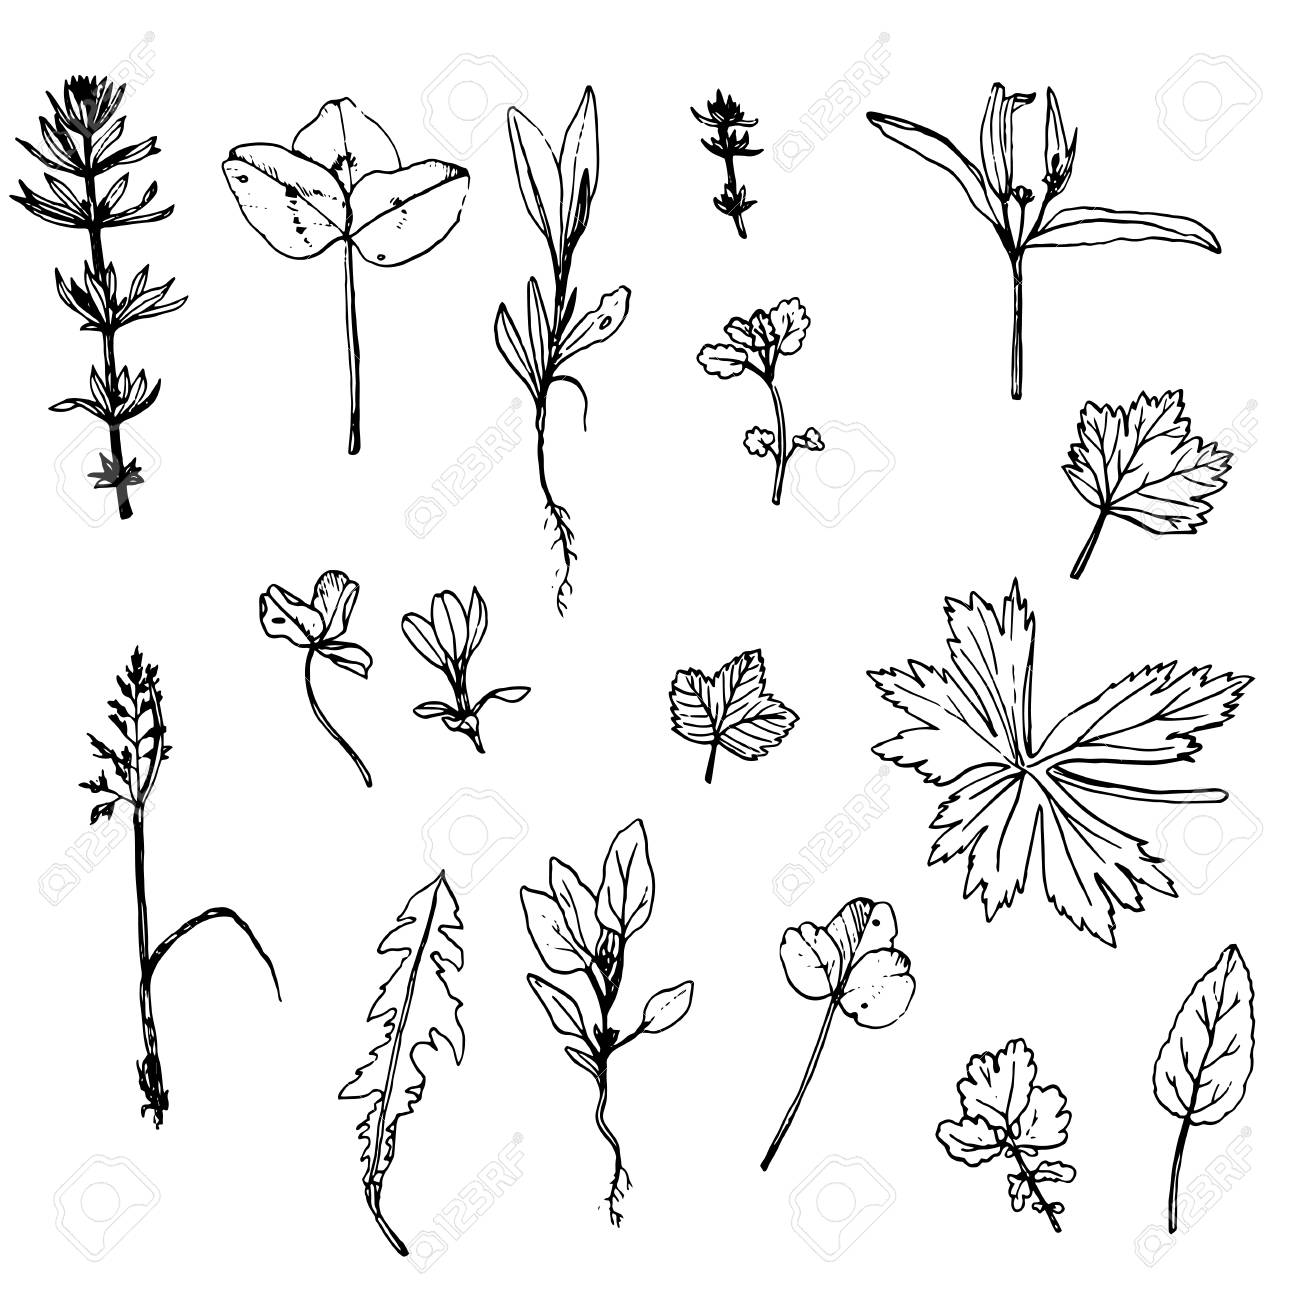 1300x1300 Set Of Ink Drawing Wild Flowers, Leaves And Herbs,drawing Wild